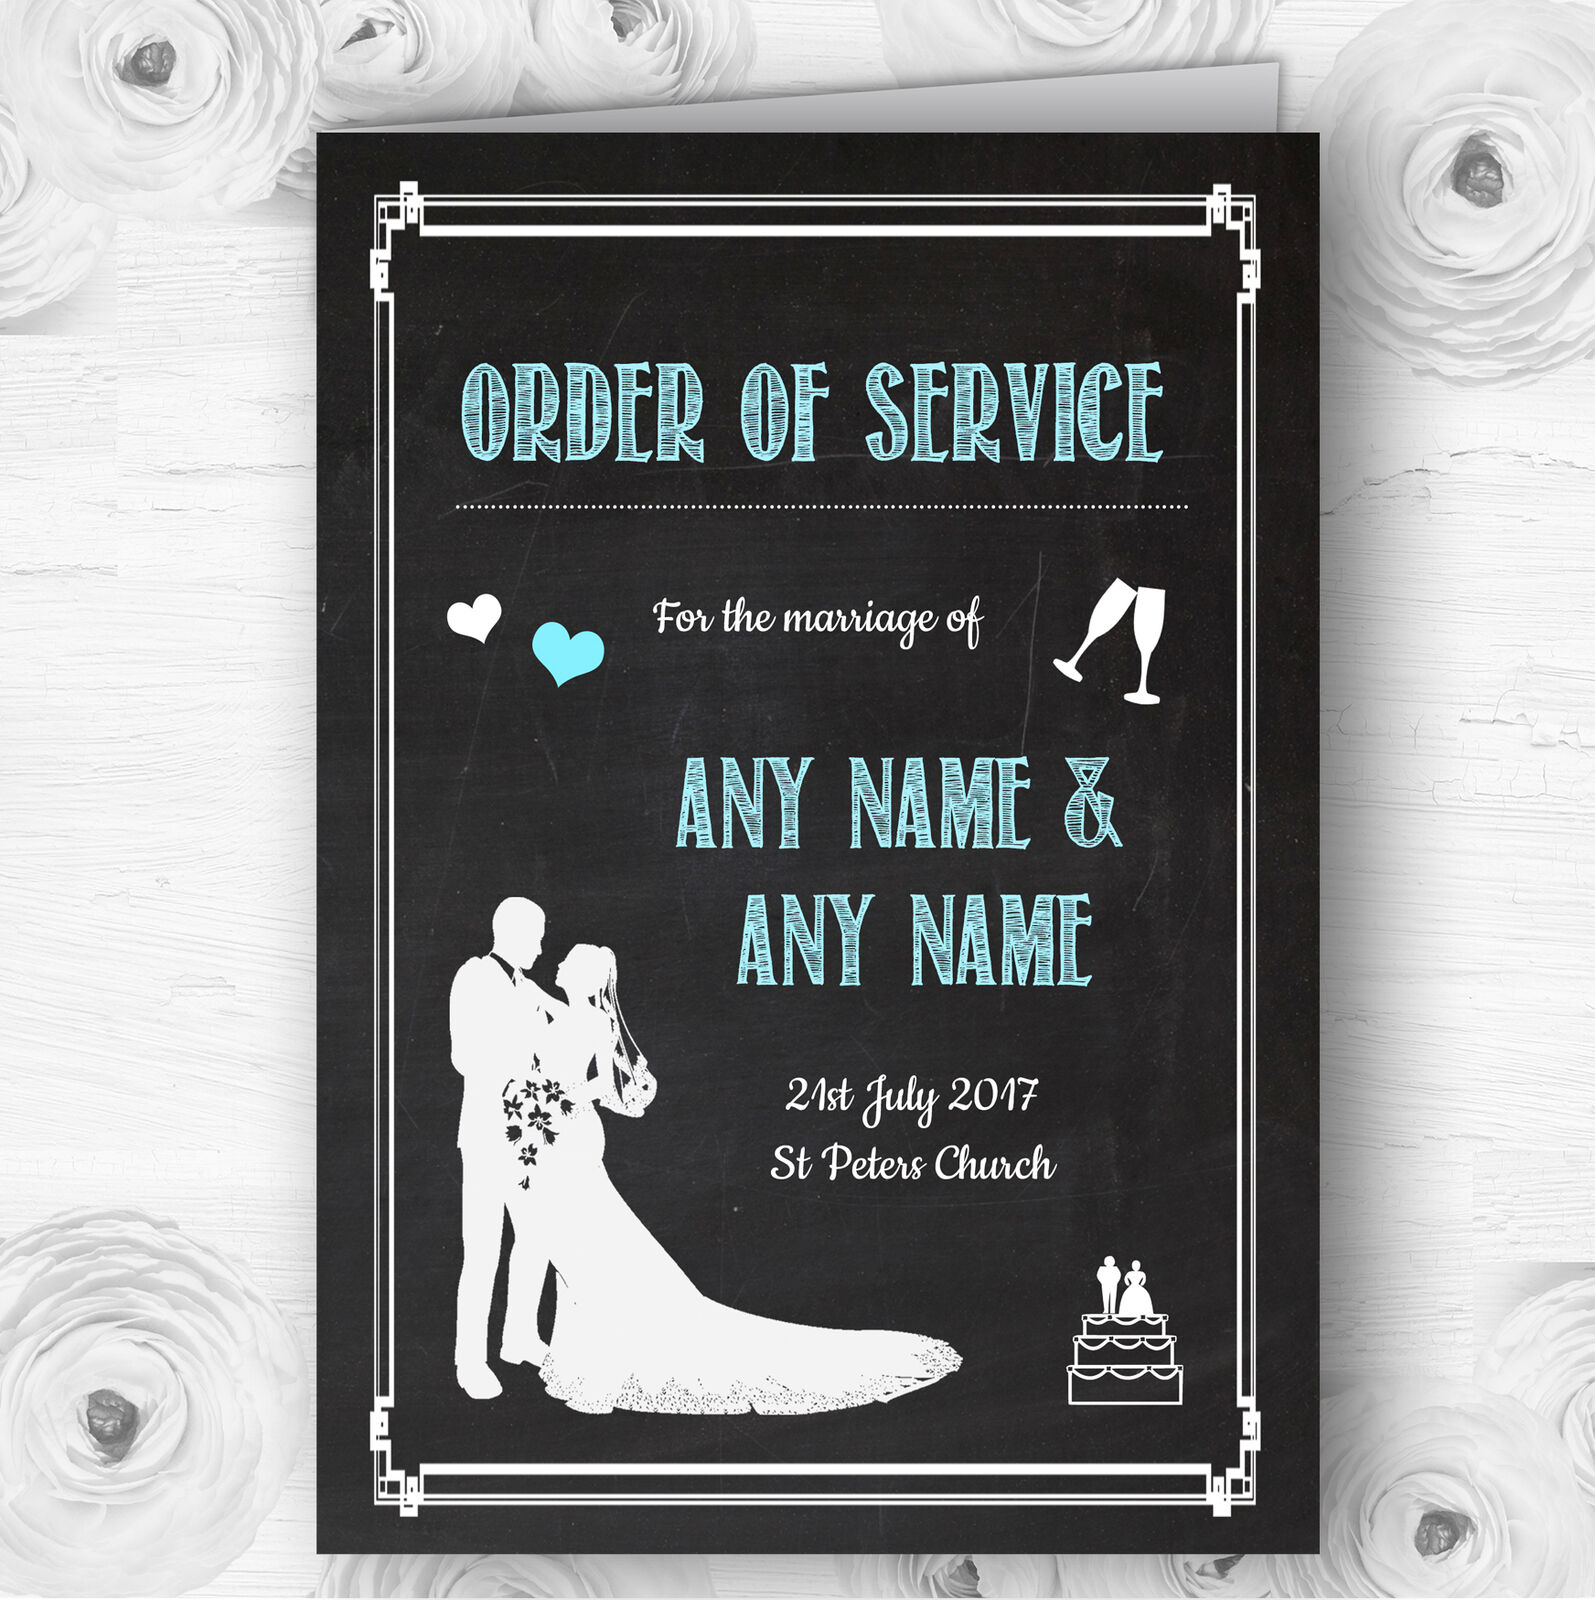 Chalkboard Aqua Personalised Wedding Double Sided Cover Order Of Service